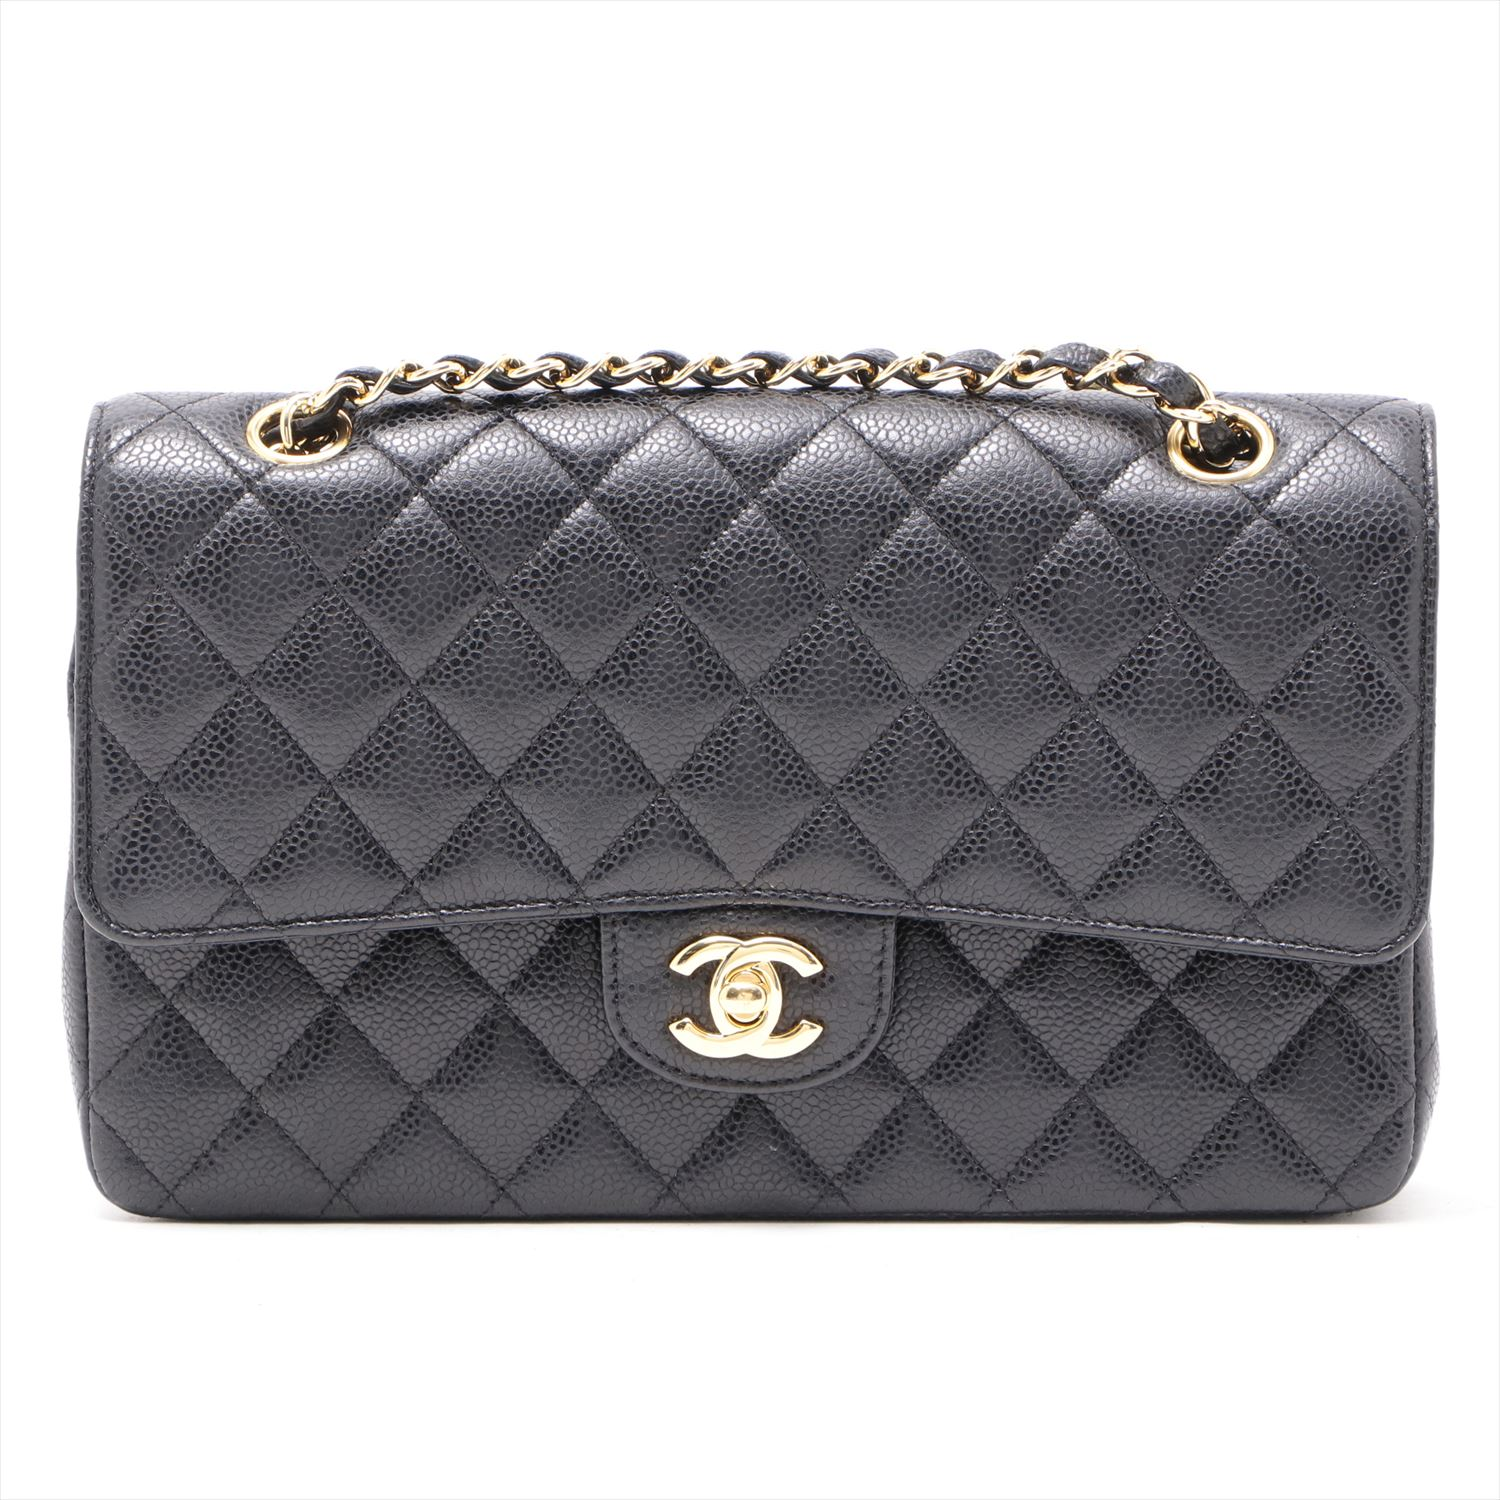 [Used goods] Chanel Matorasse caviar skin double flap double chain Bag Black Gold Hardware